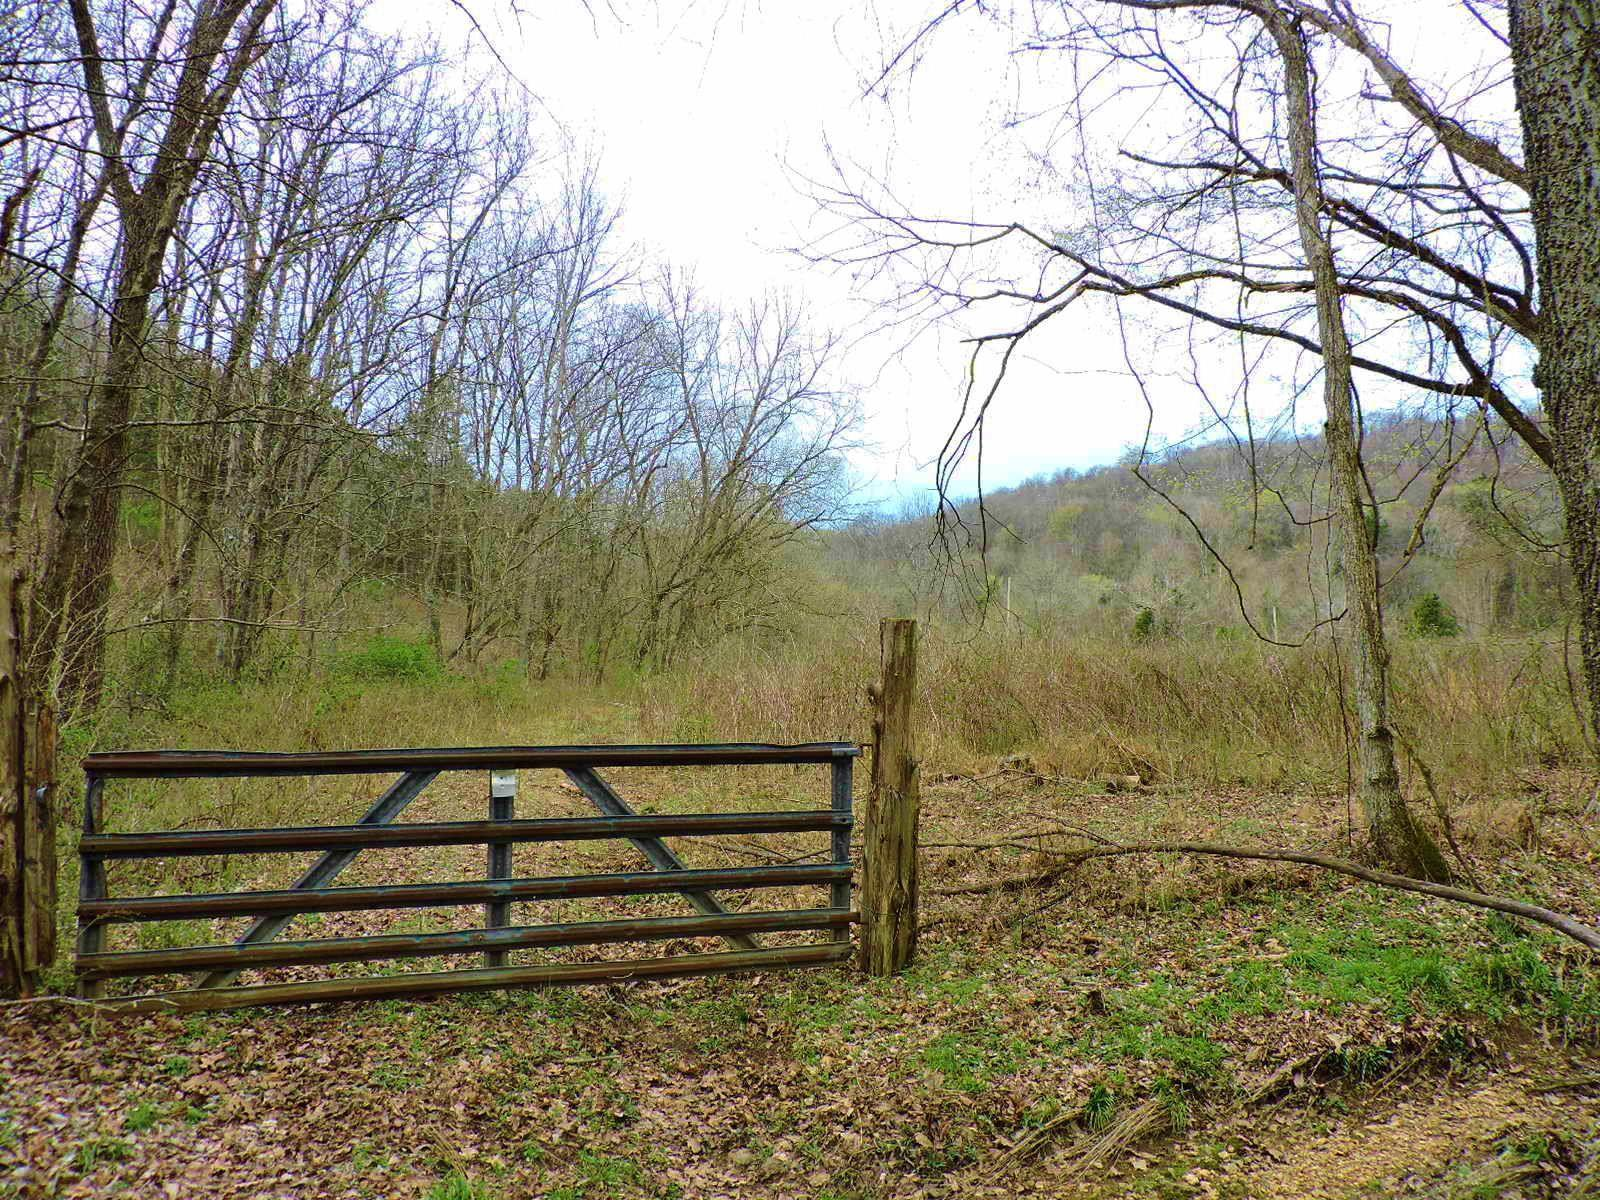 0 Barnetts Campground Ln, Gordonsville, TN 38563 - Gordonsville, TN real estate listing